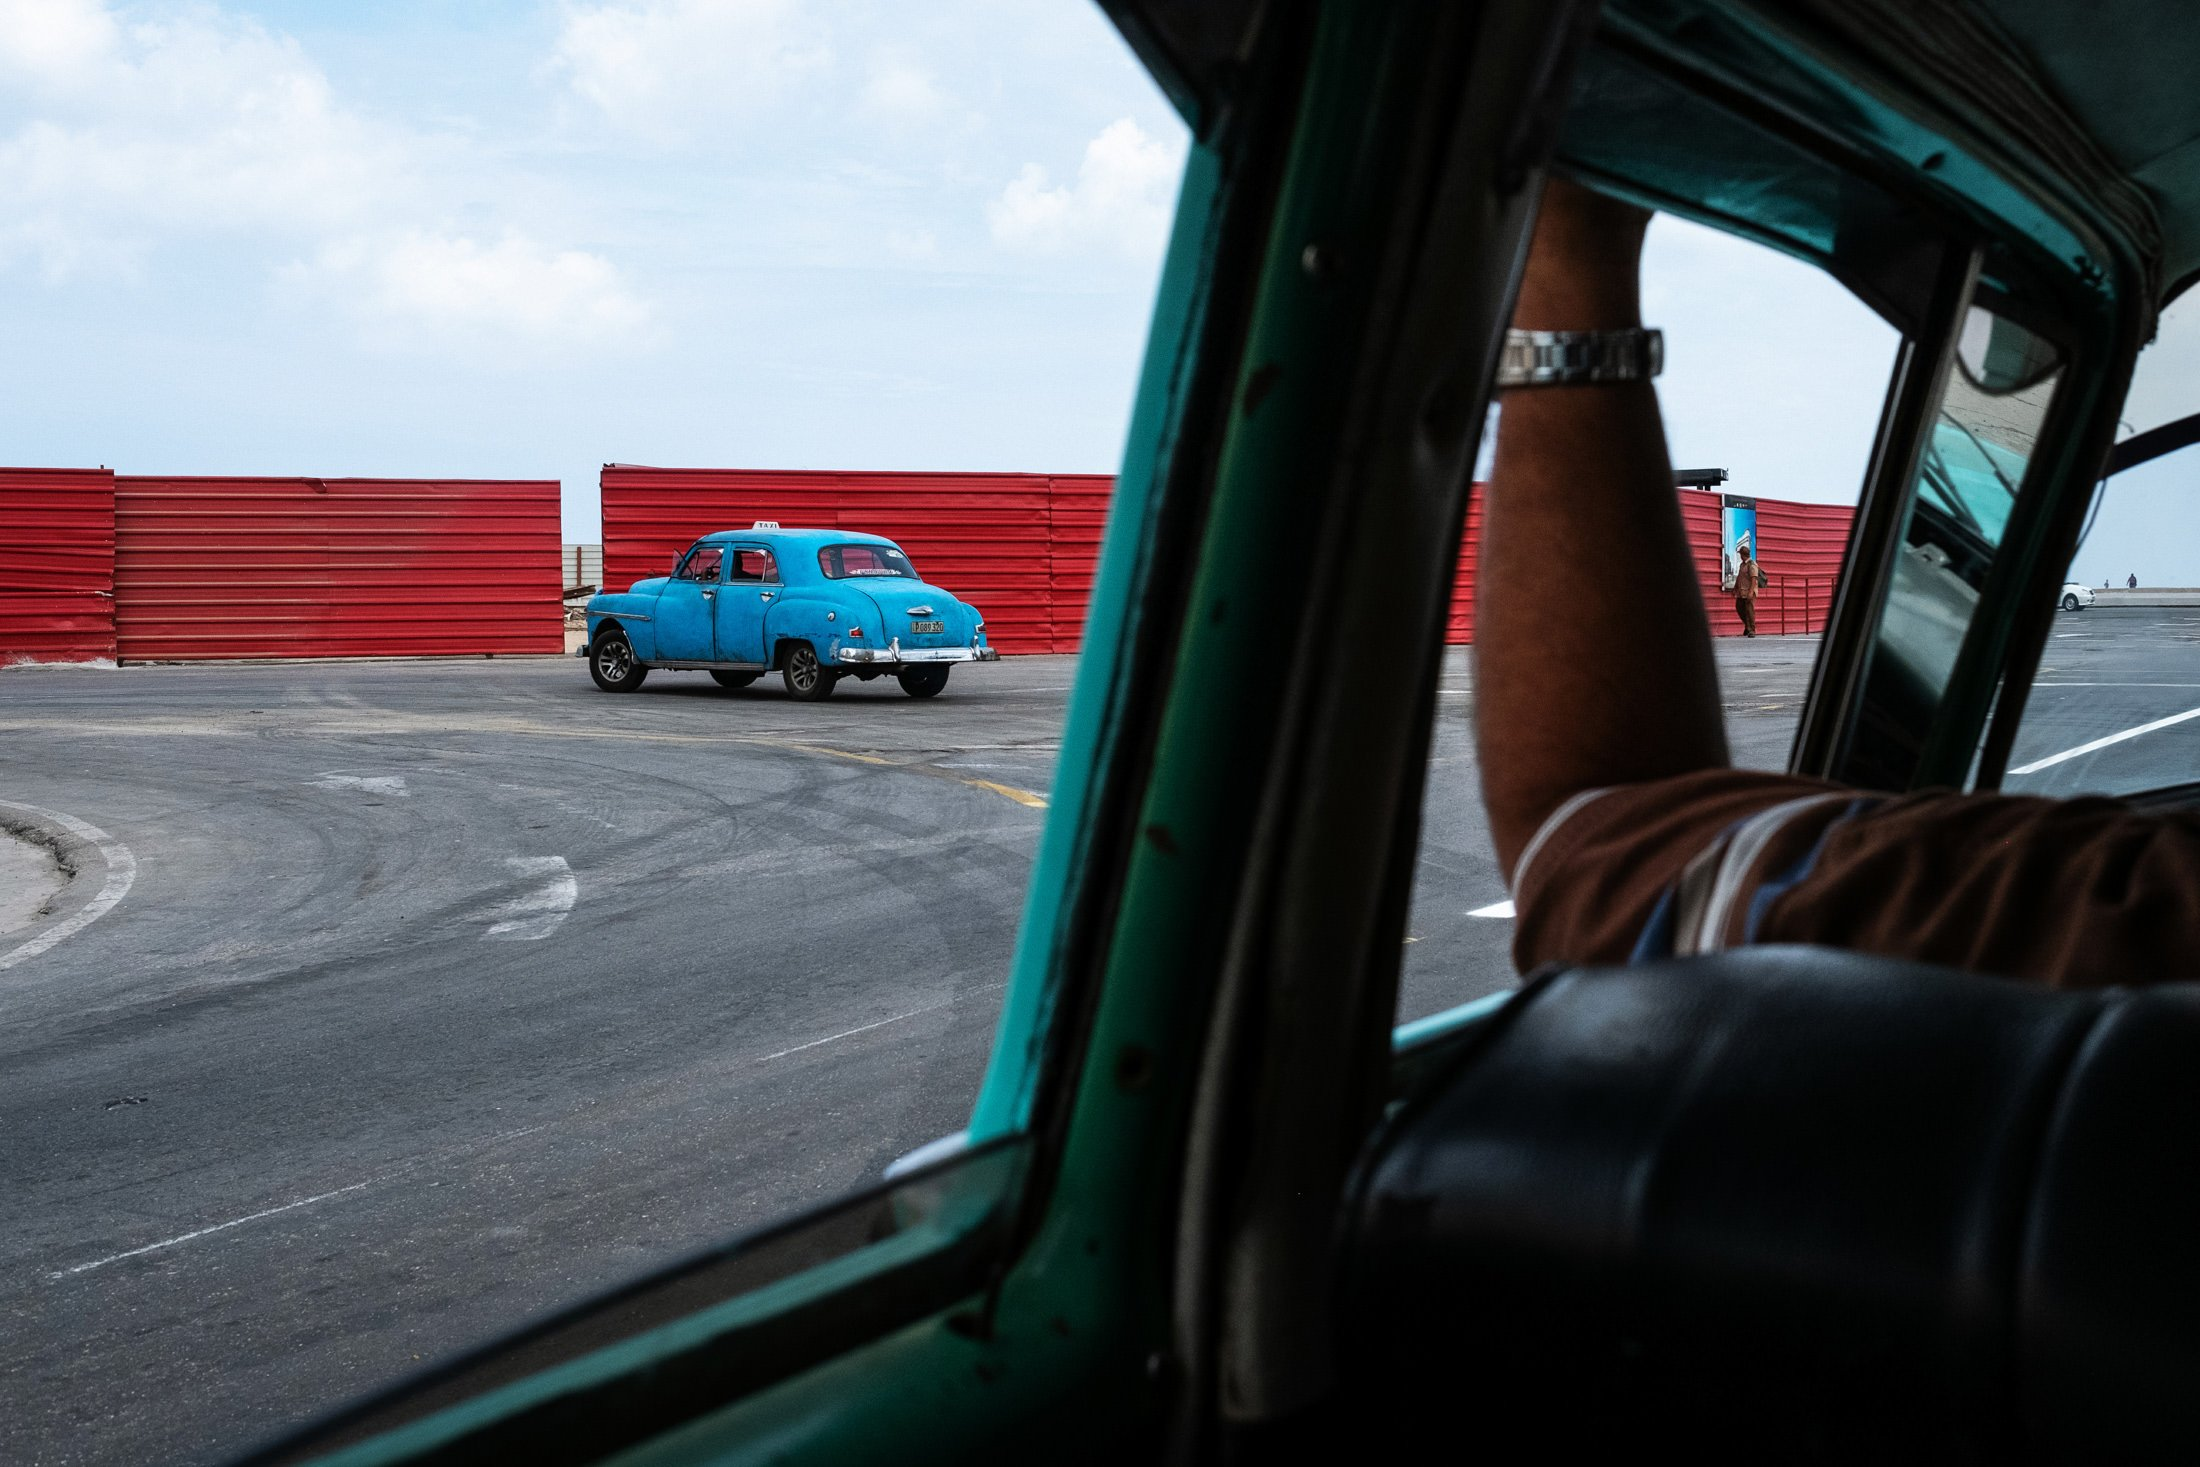 driving down Havana's Malecon looking at a blue car